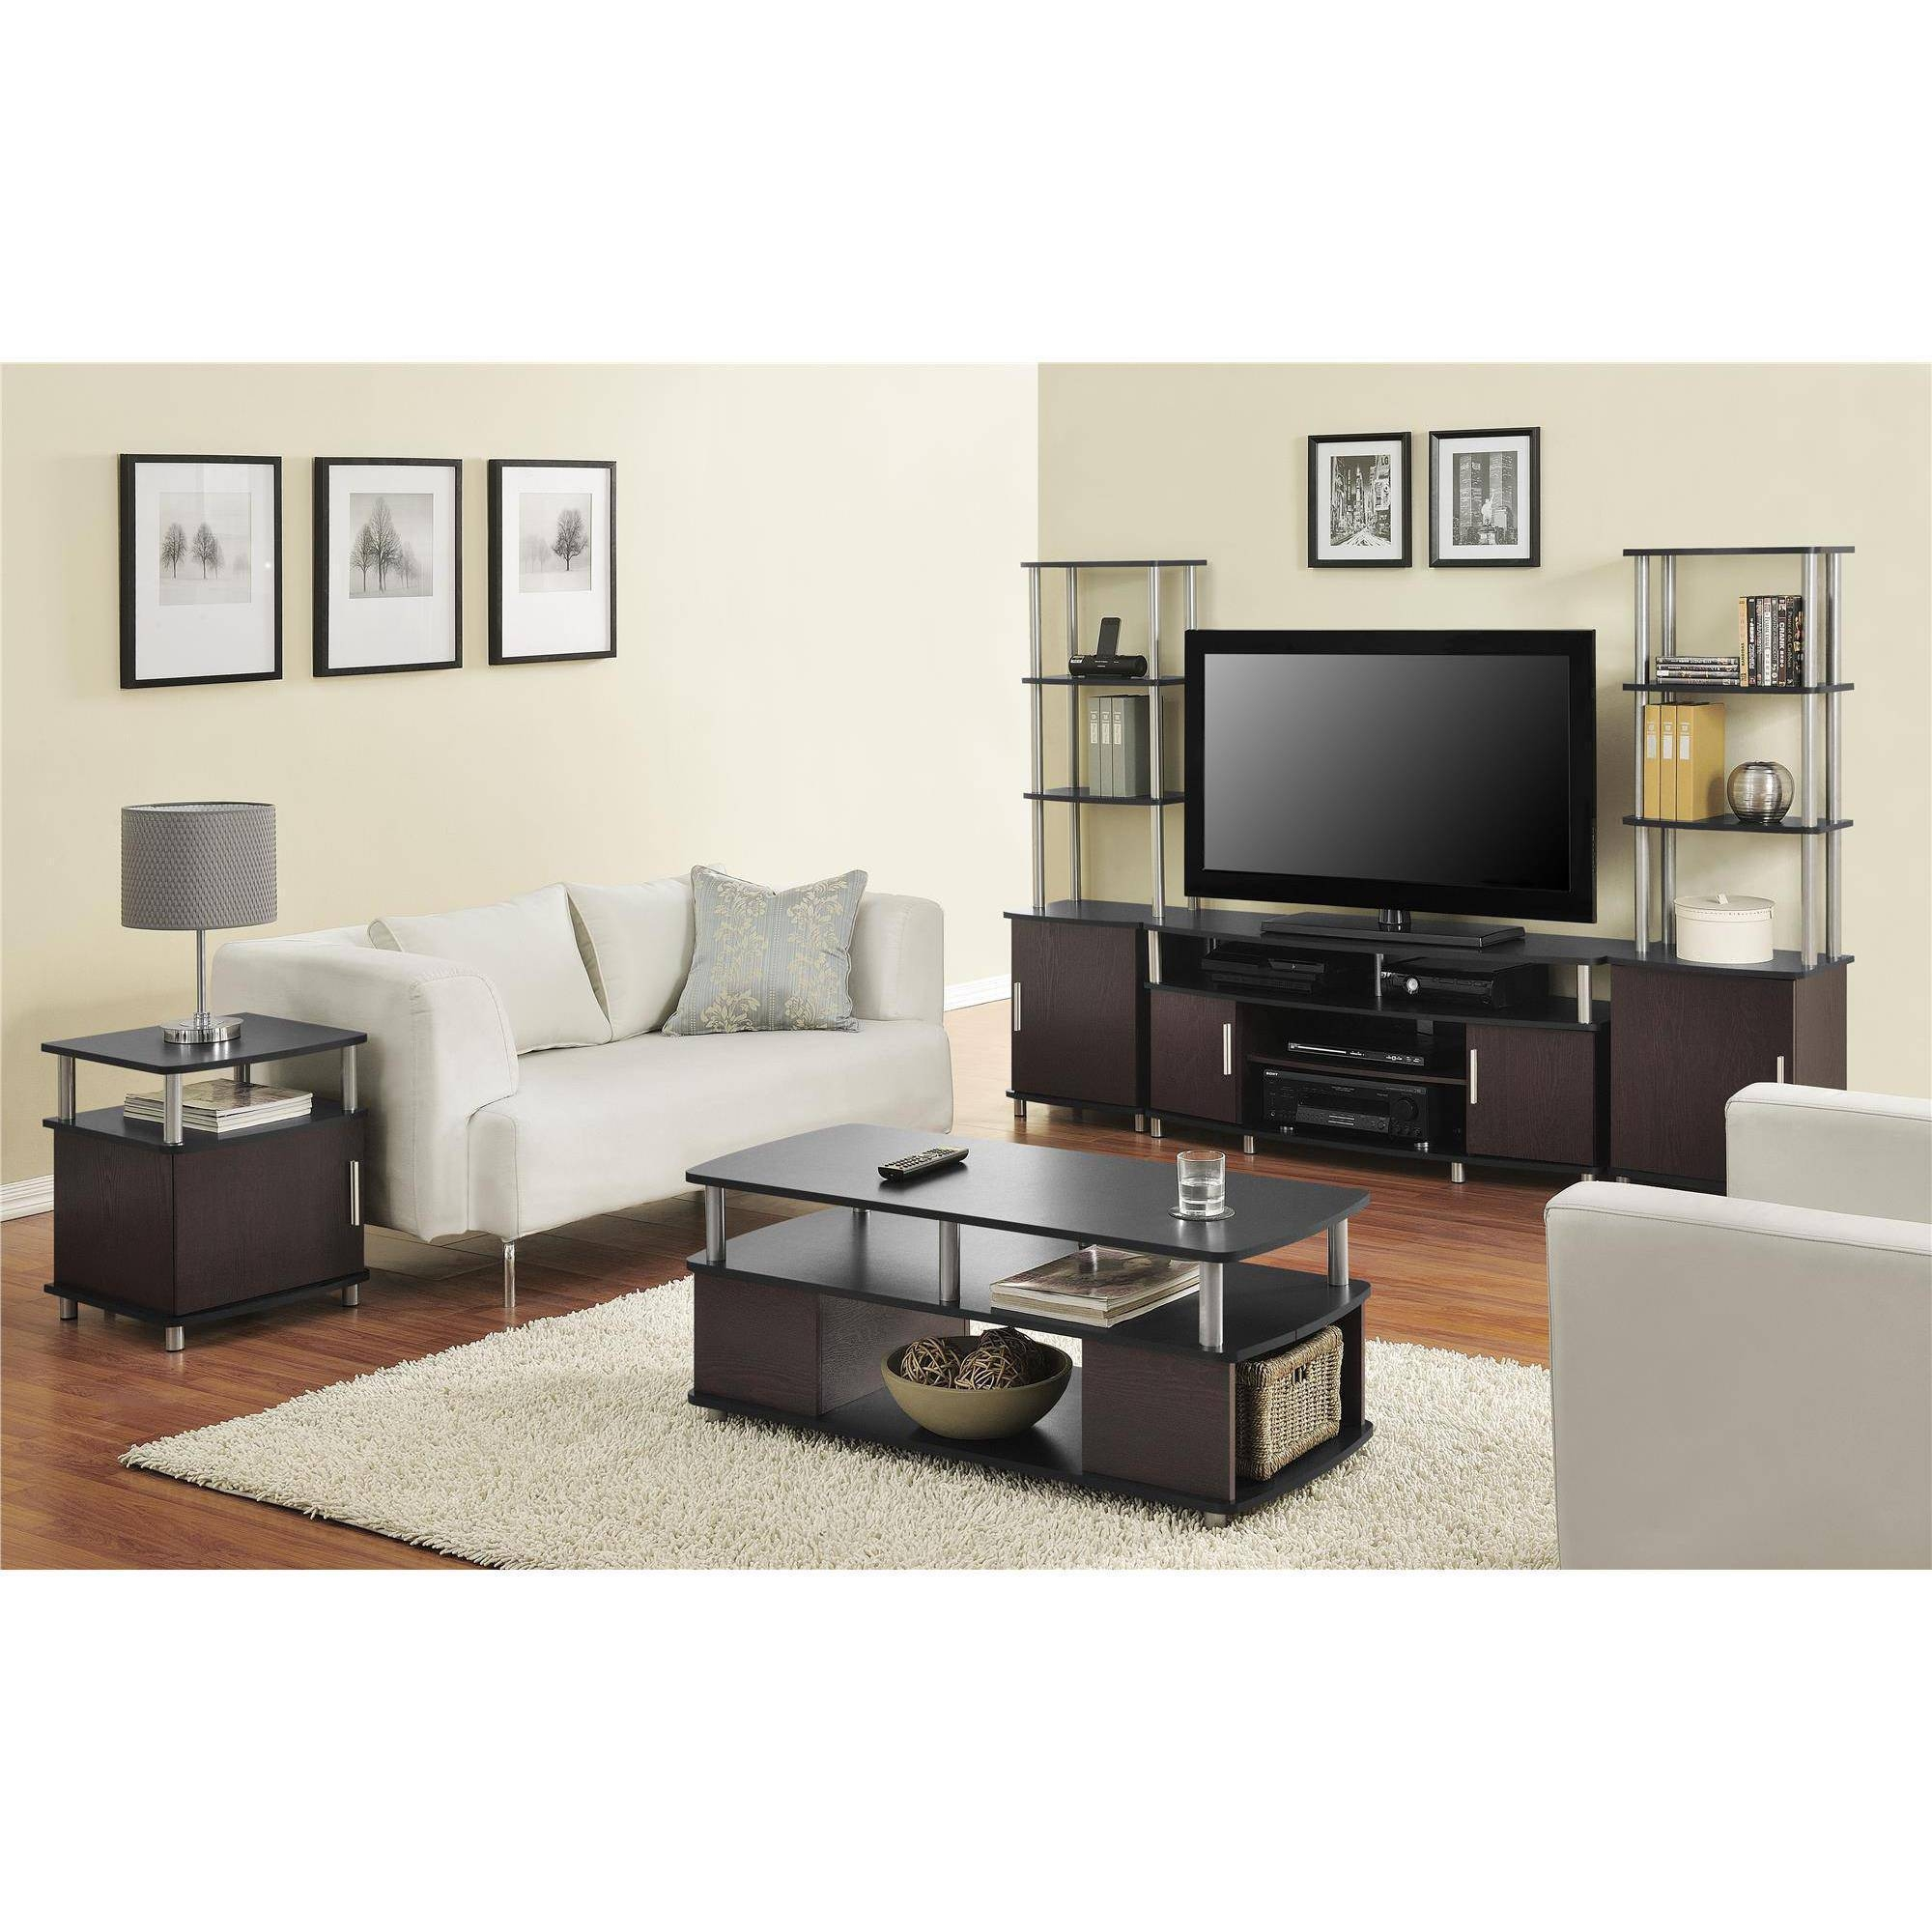 Tv Stand Coffee Table End Table Set | Coffee Tables Decoration with regard to Tv Cabinet And Coffee Table Sets (Image 26 of 30)